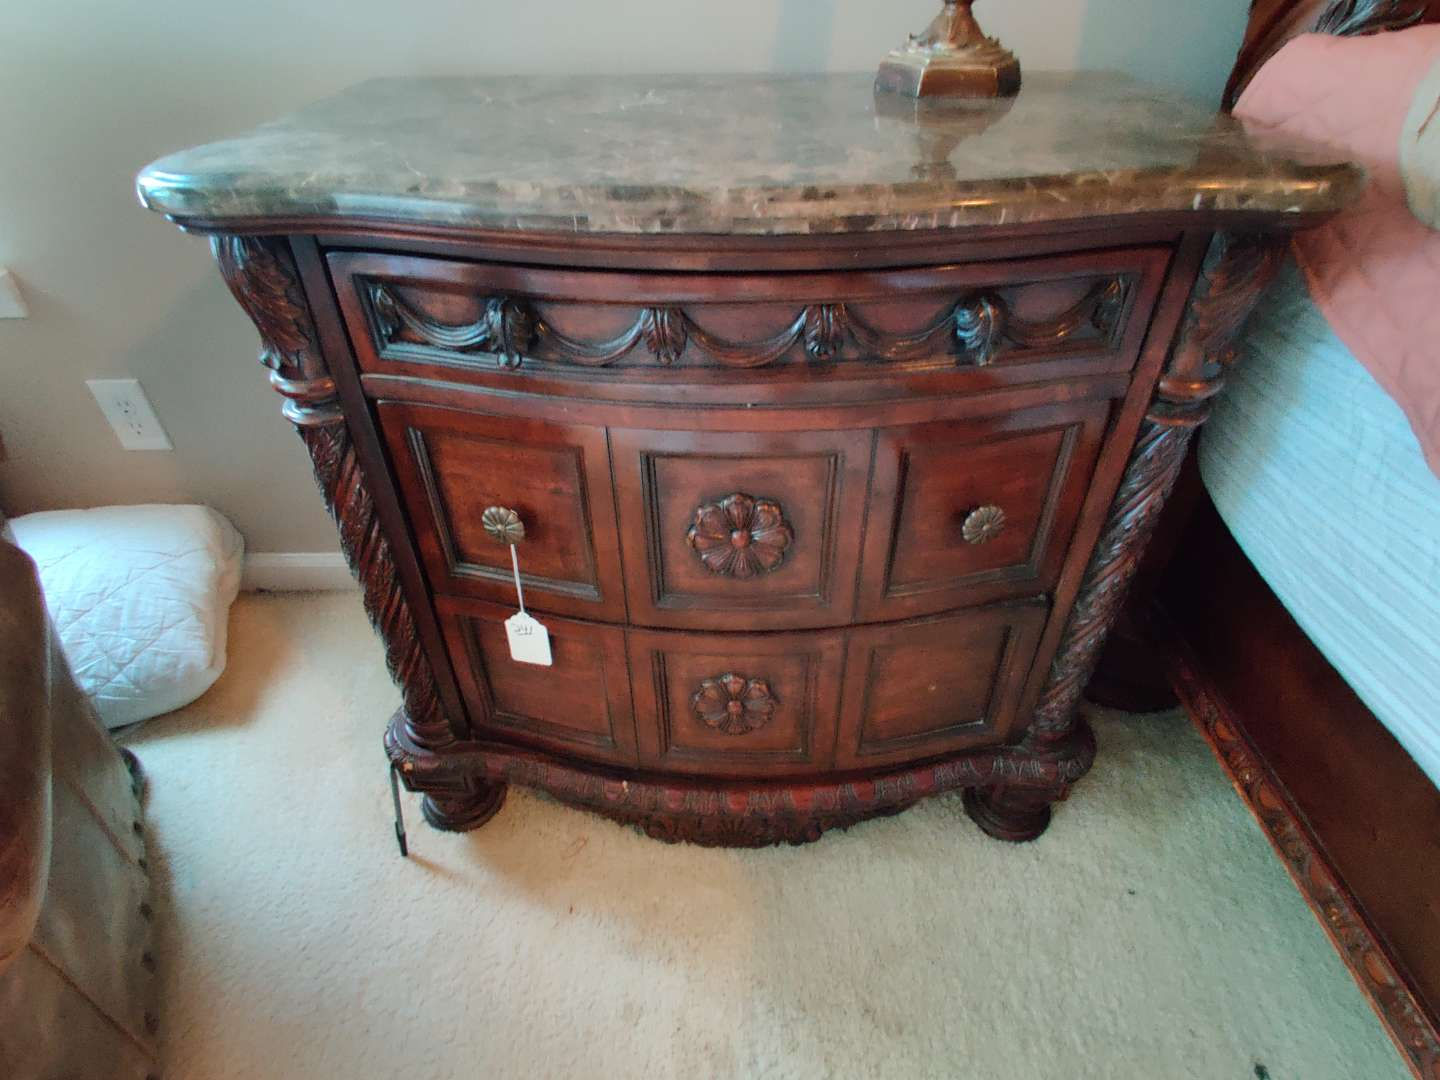 242 marble top night stand 34 in wide 33 in tall missing two knobs